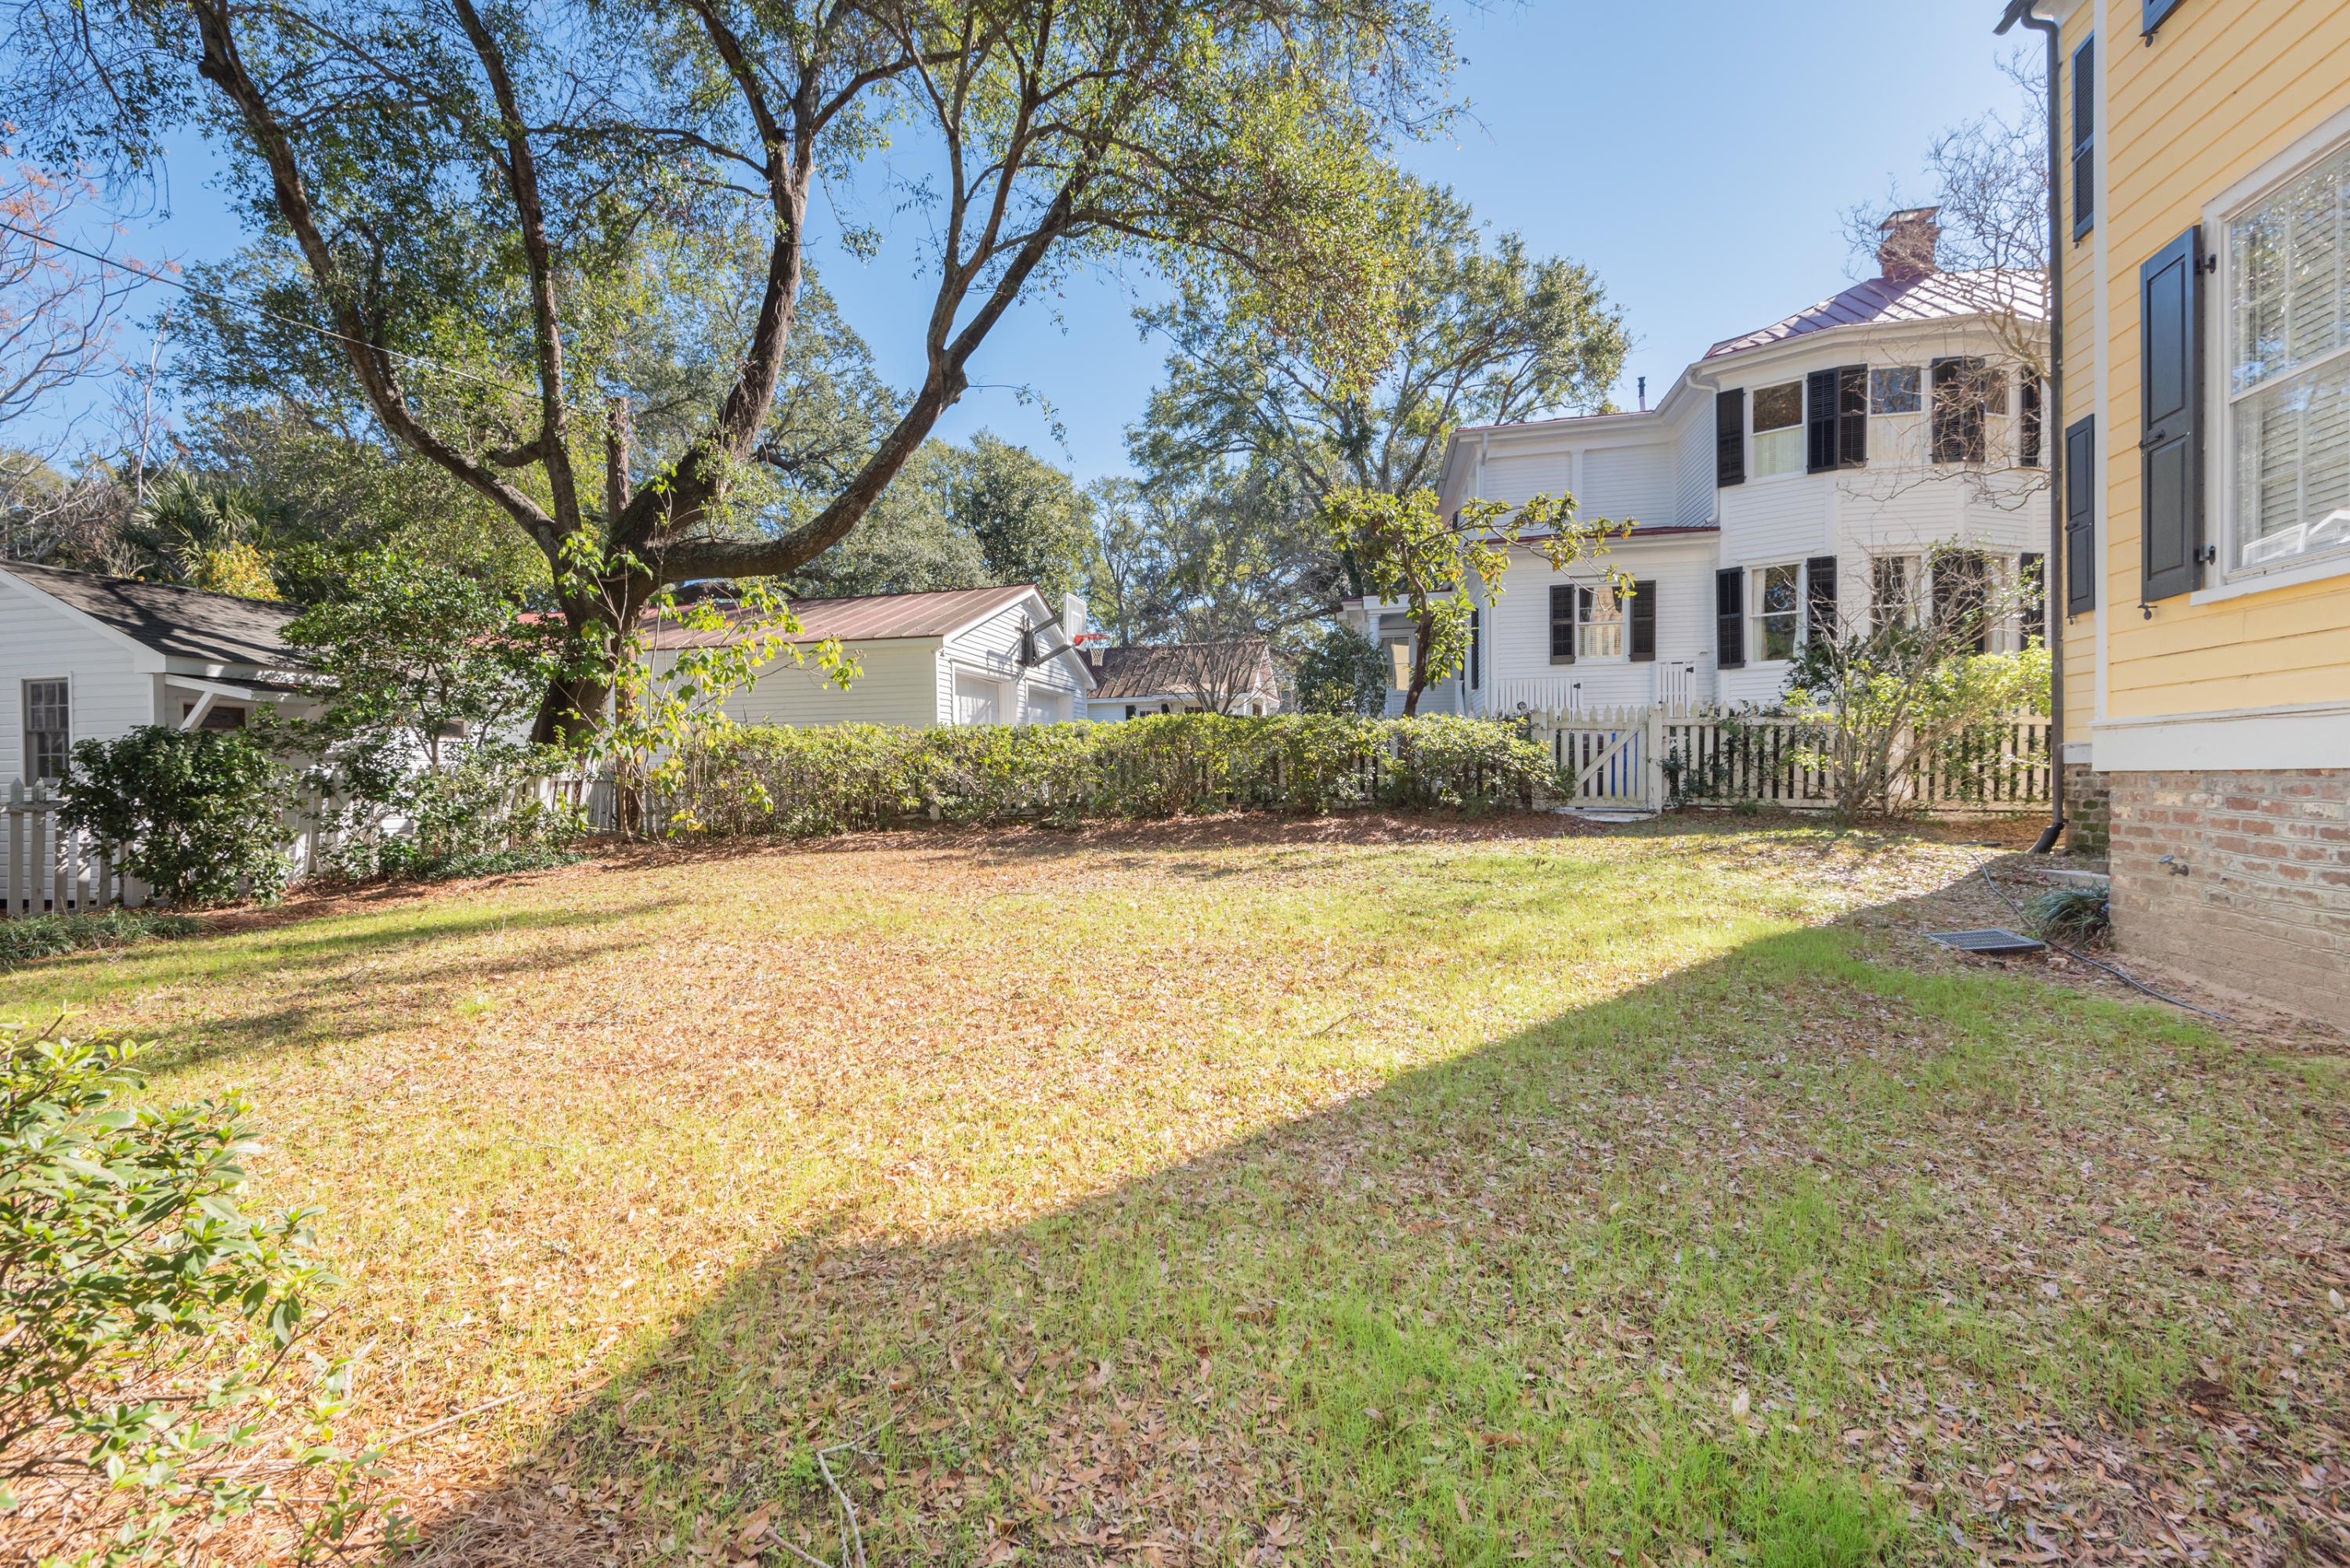 Old Village Homes For Sale - 202 Pitt, Mount Pleasant, SC - 11